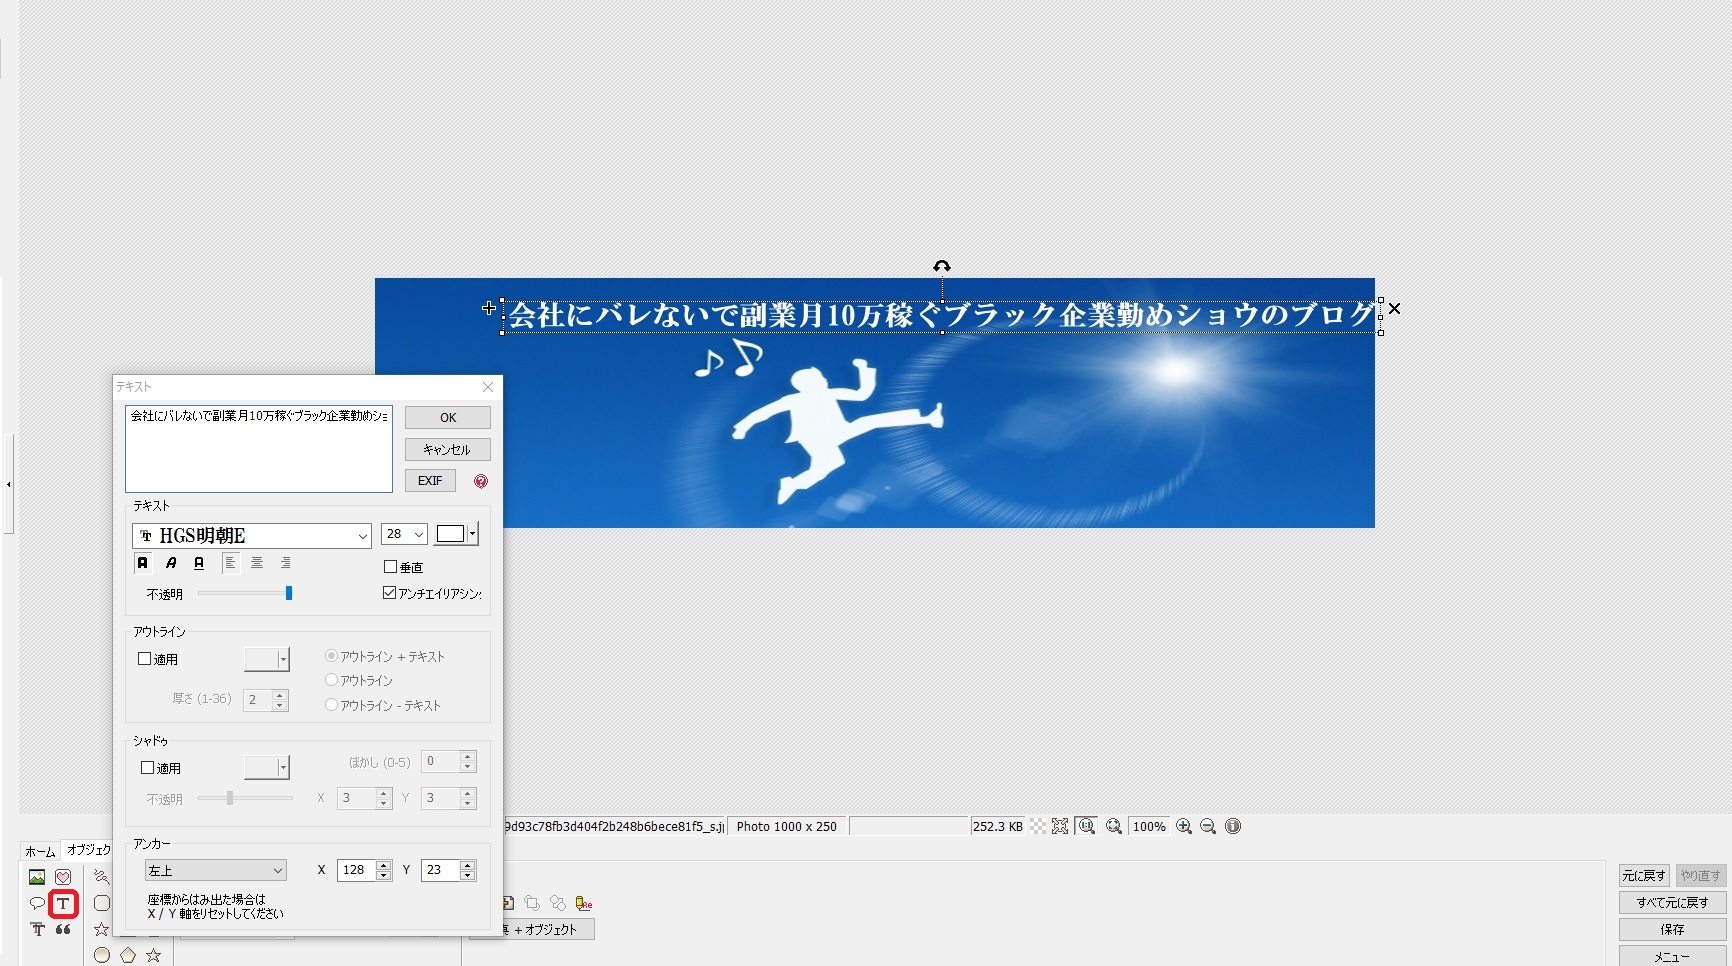 button-only@2x photoscapeでヘッダー画像を作成する方法